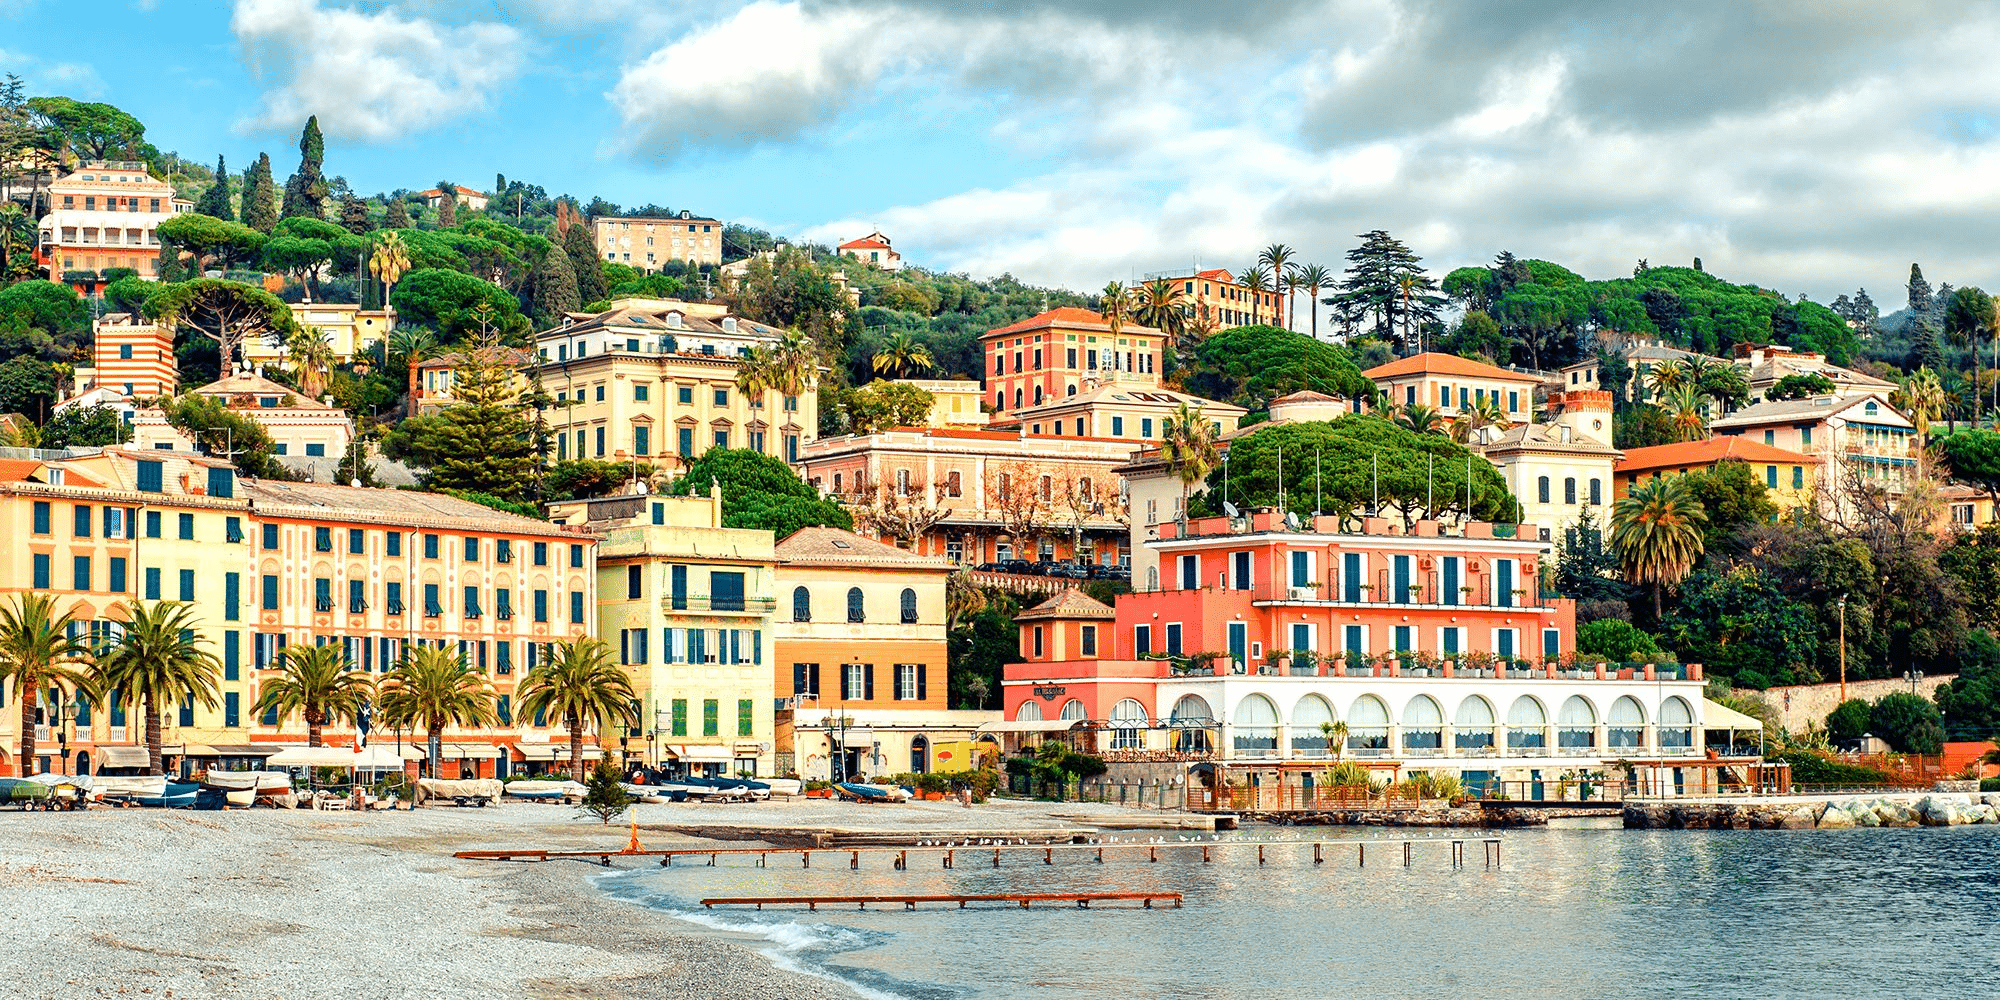 Image of an Italian town rising from the edge of a body of water up a slope with yellow-stone buildings